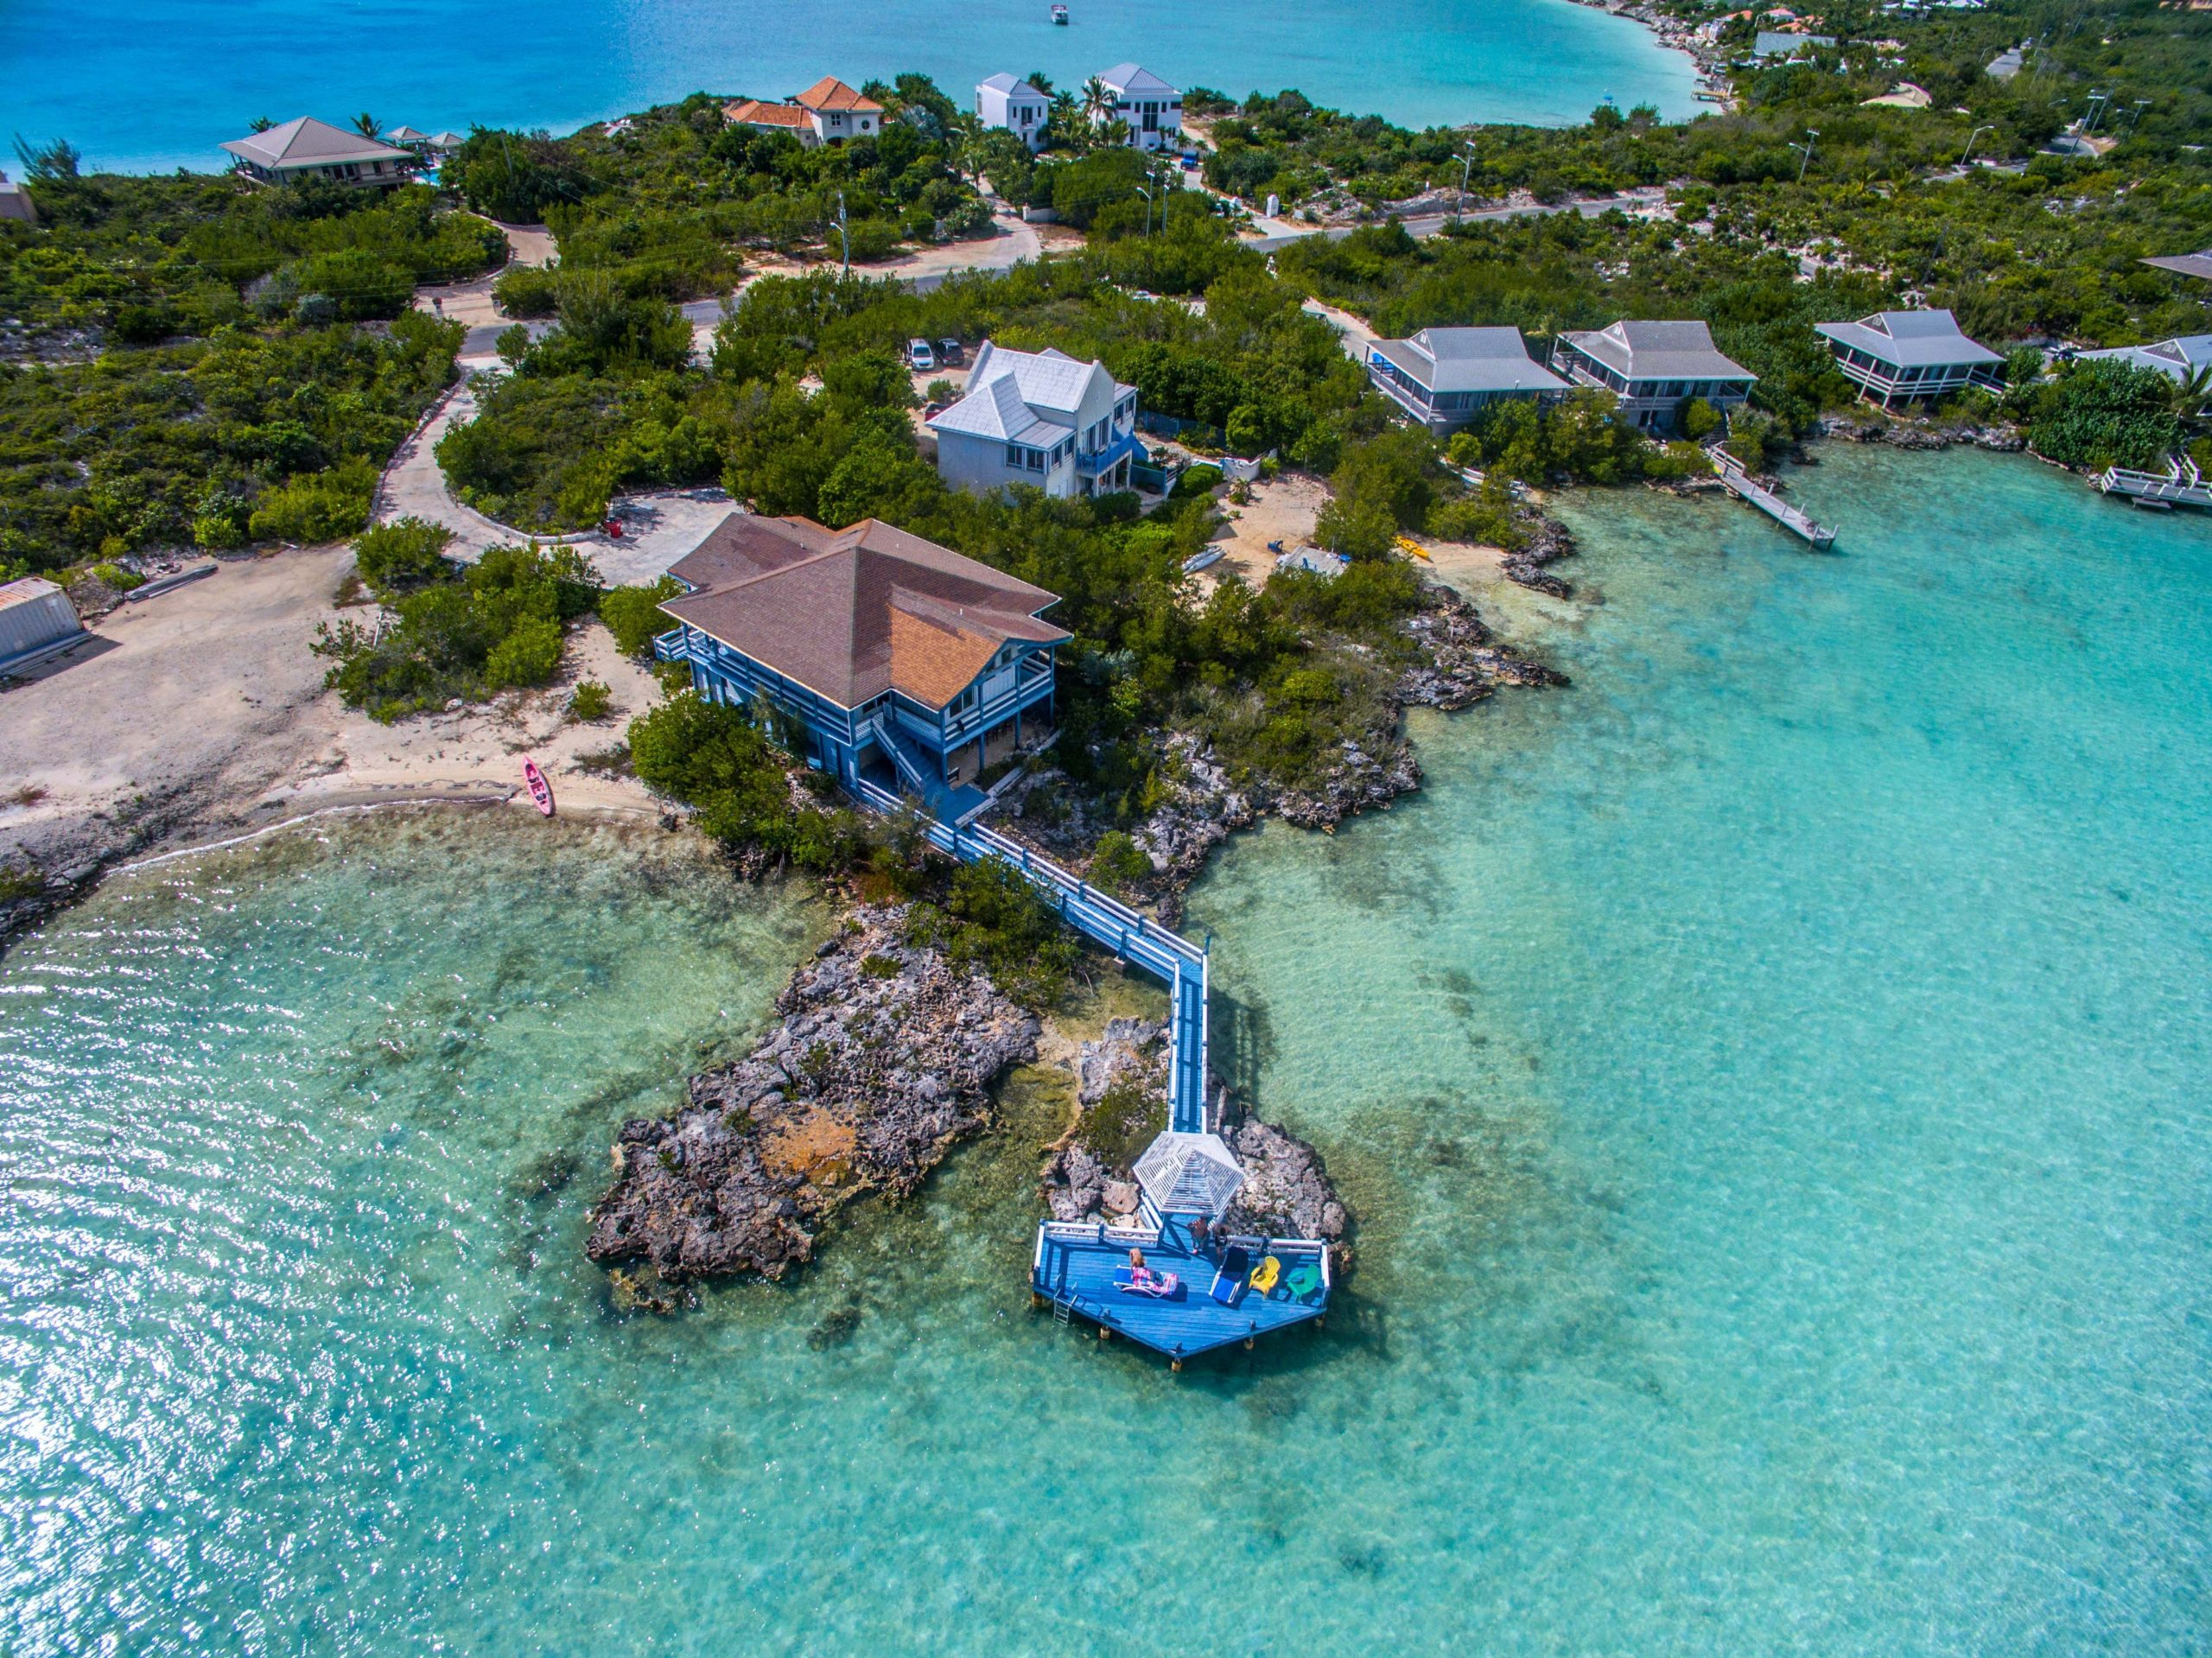 birds eye view of a safe island in turks and caicos